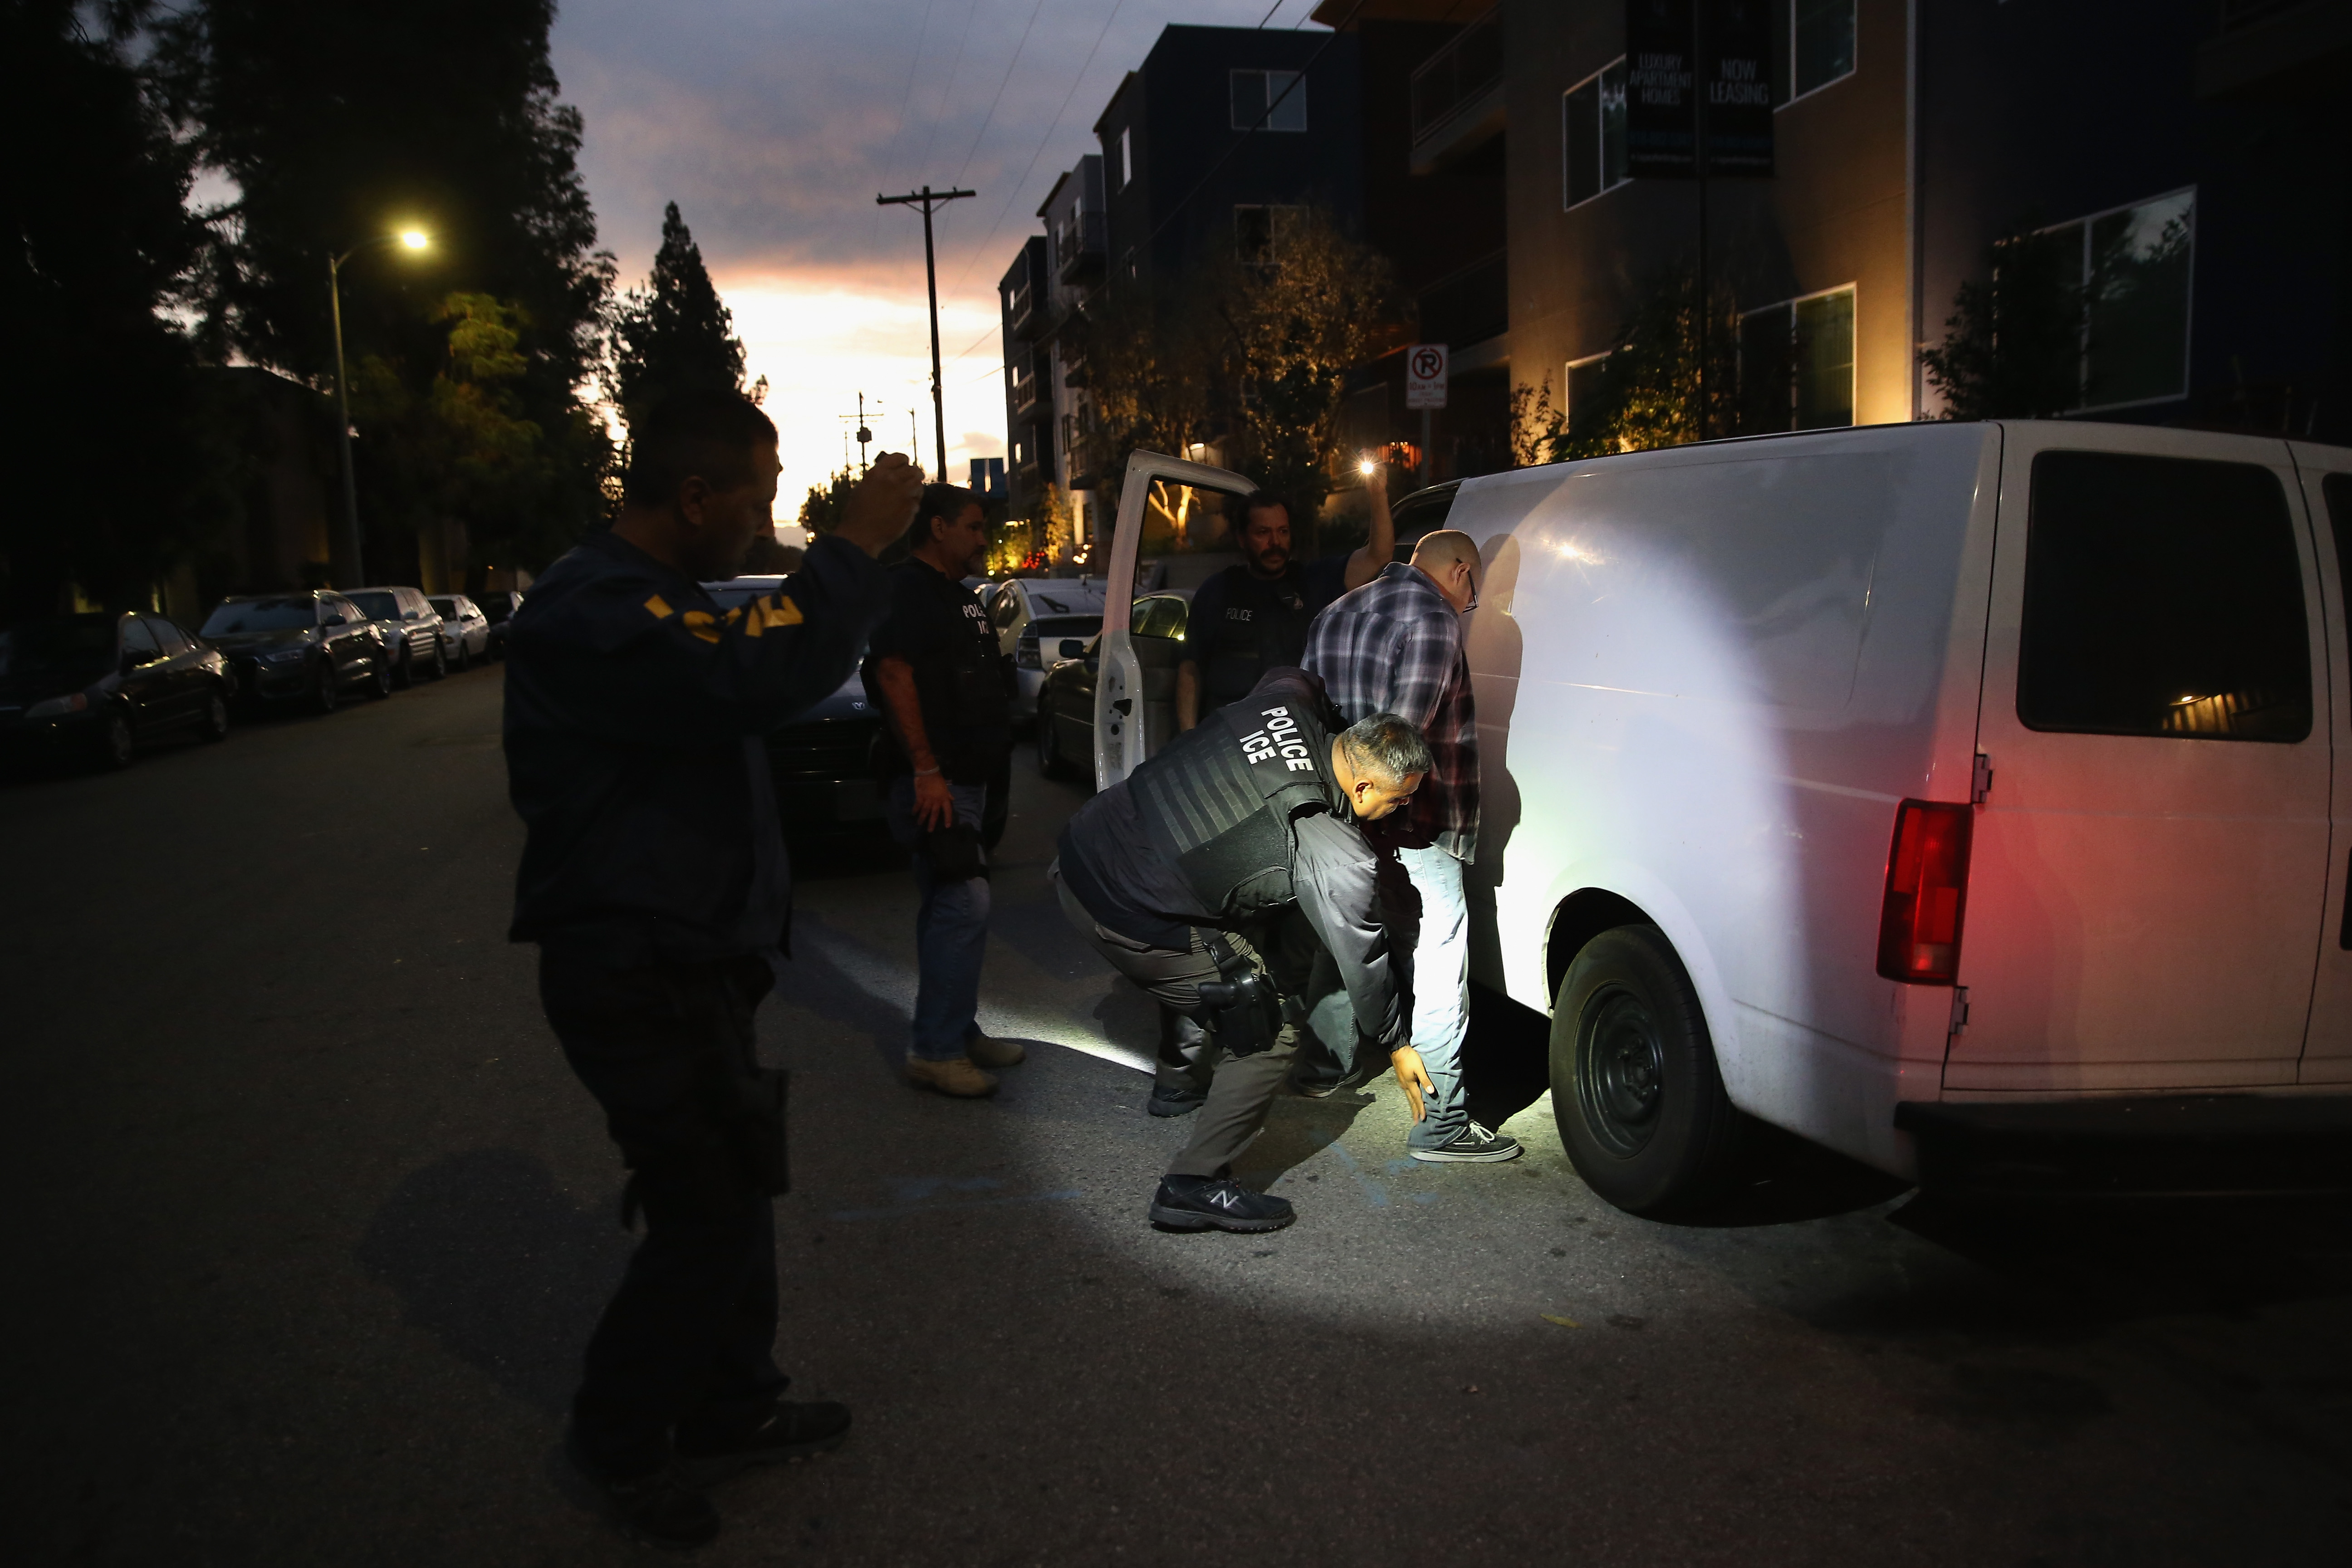 An ICE agent shines a flashlight on a man beside a van parked on a residential street while the other agent arrests the man.